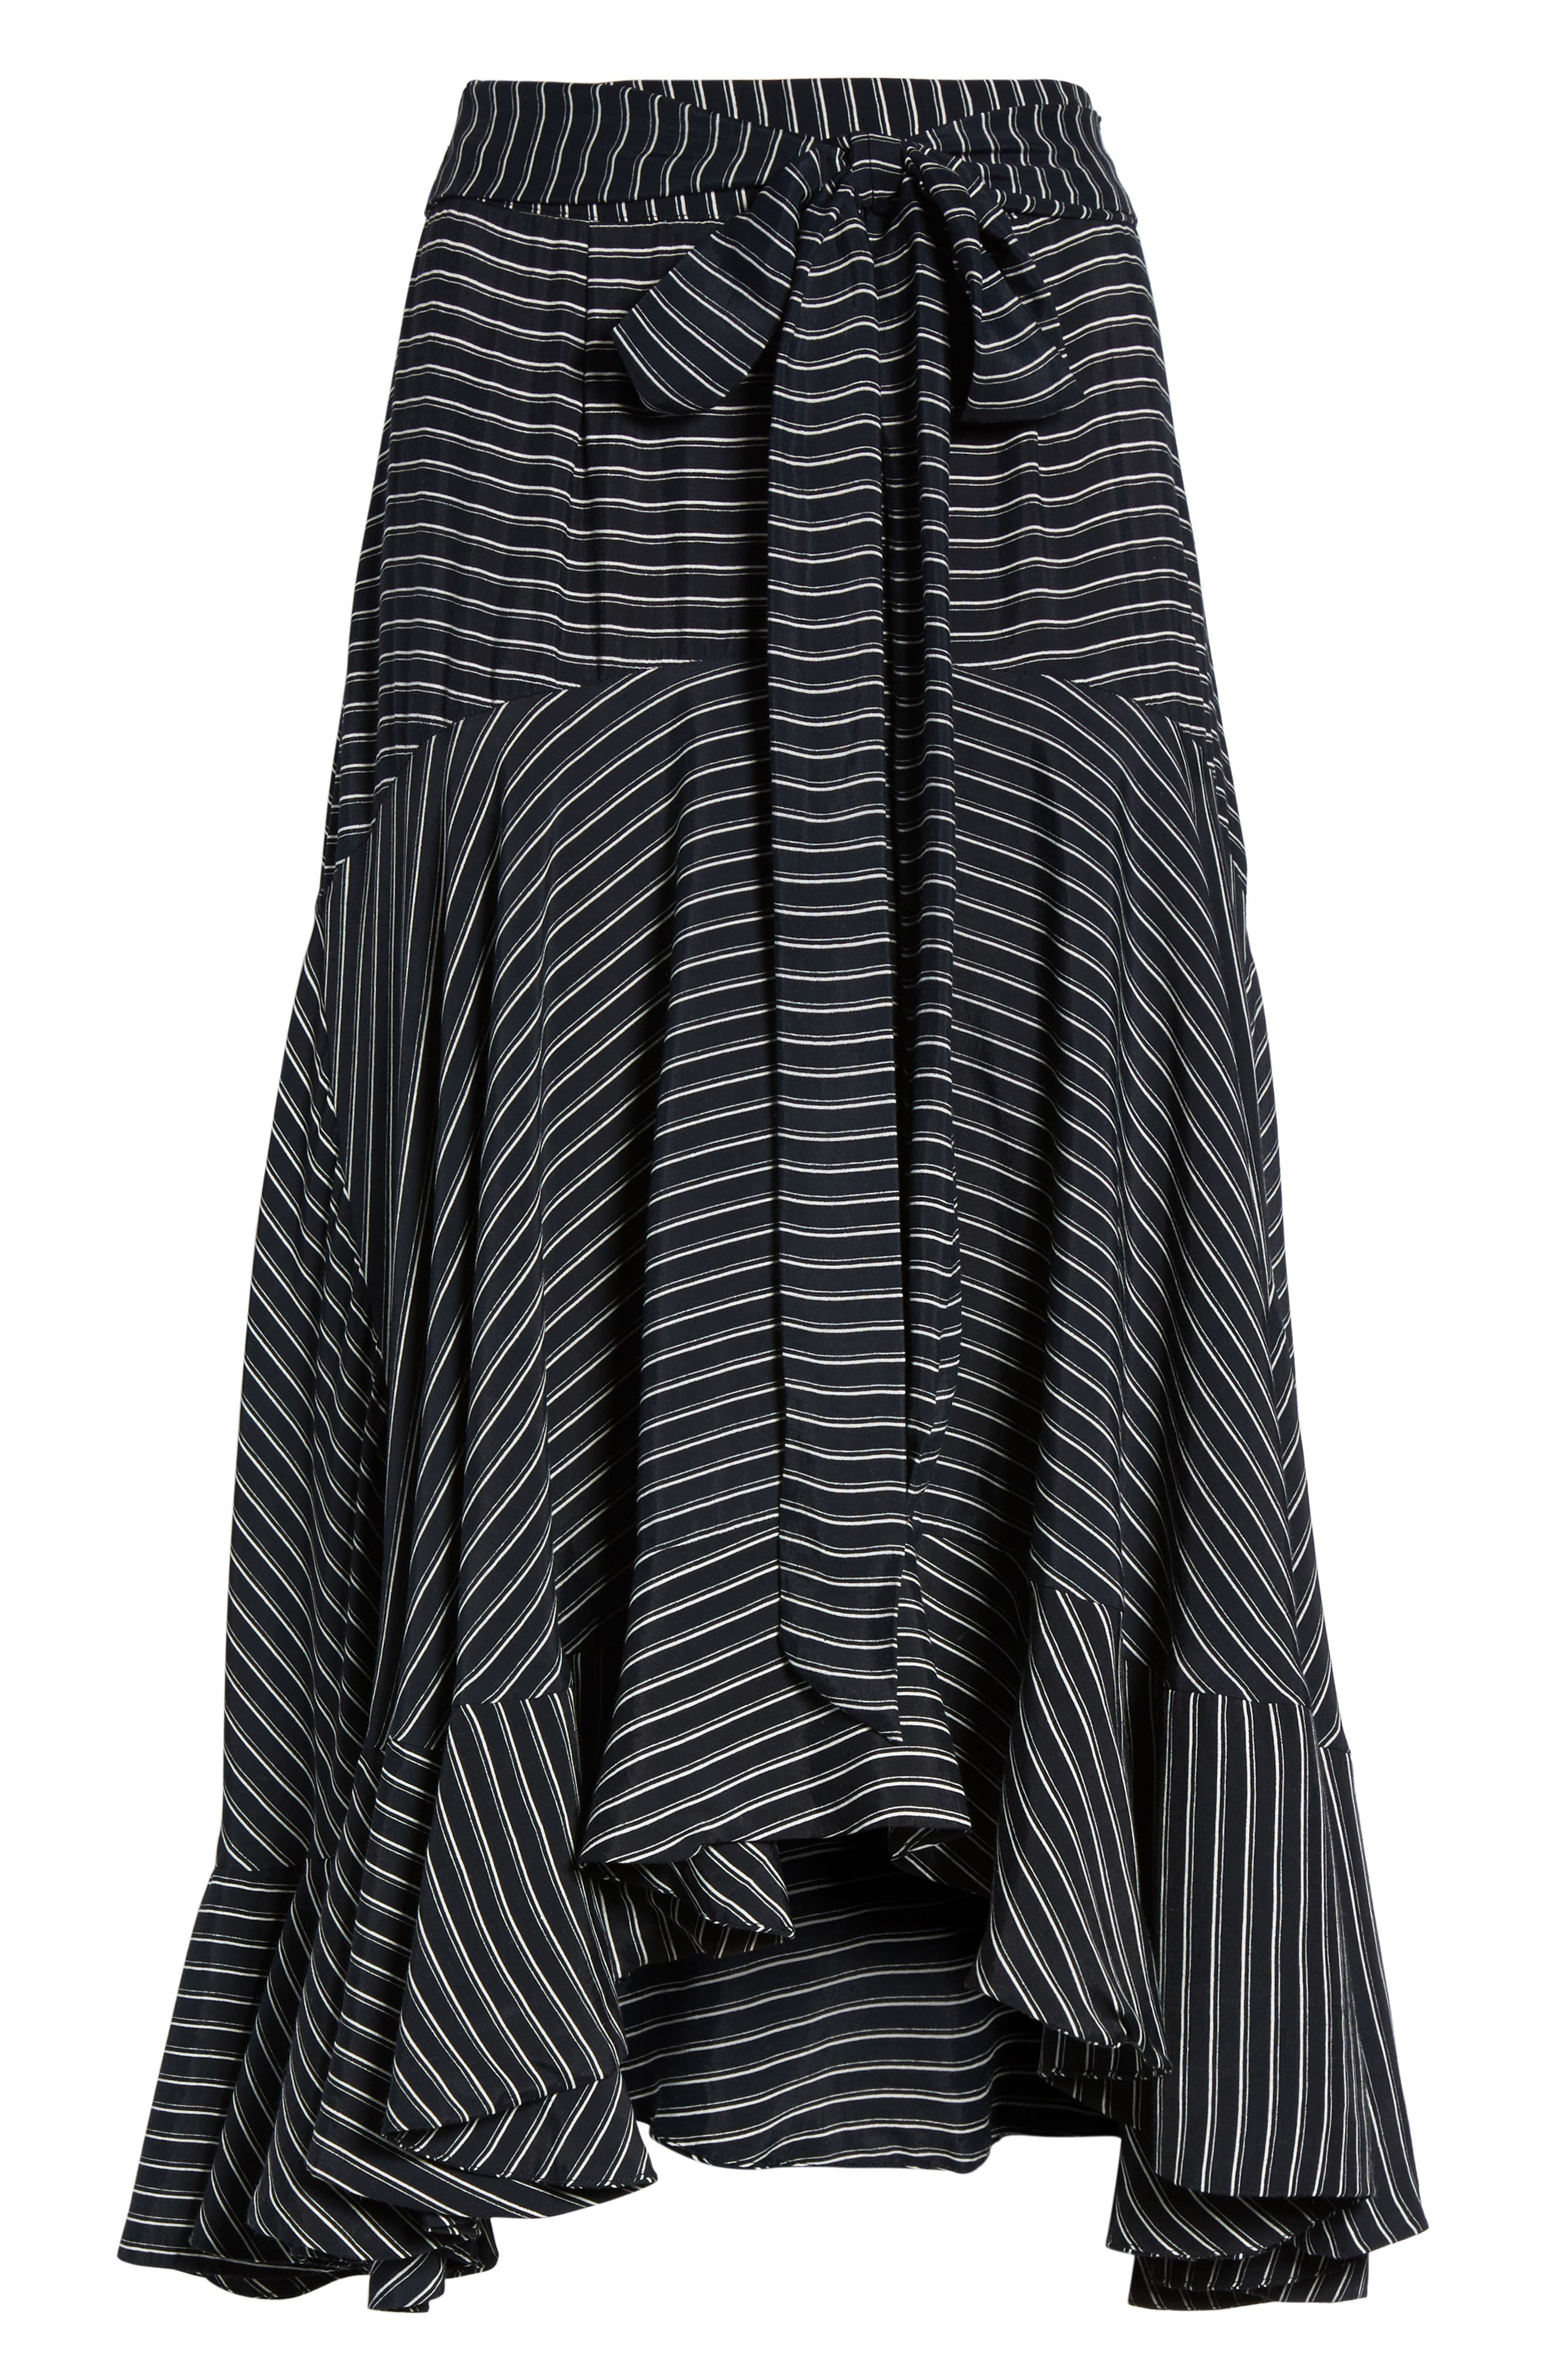 Kamares Ruffle Midi Skirt,                             Alternate thumbnail 6, color,                             San Cristobal Stripe Print